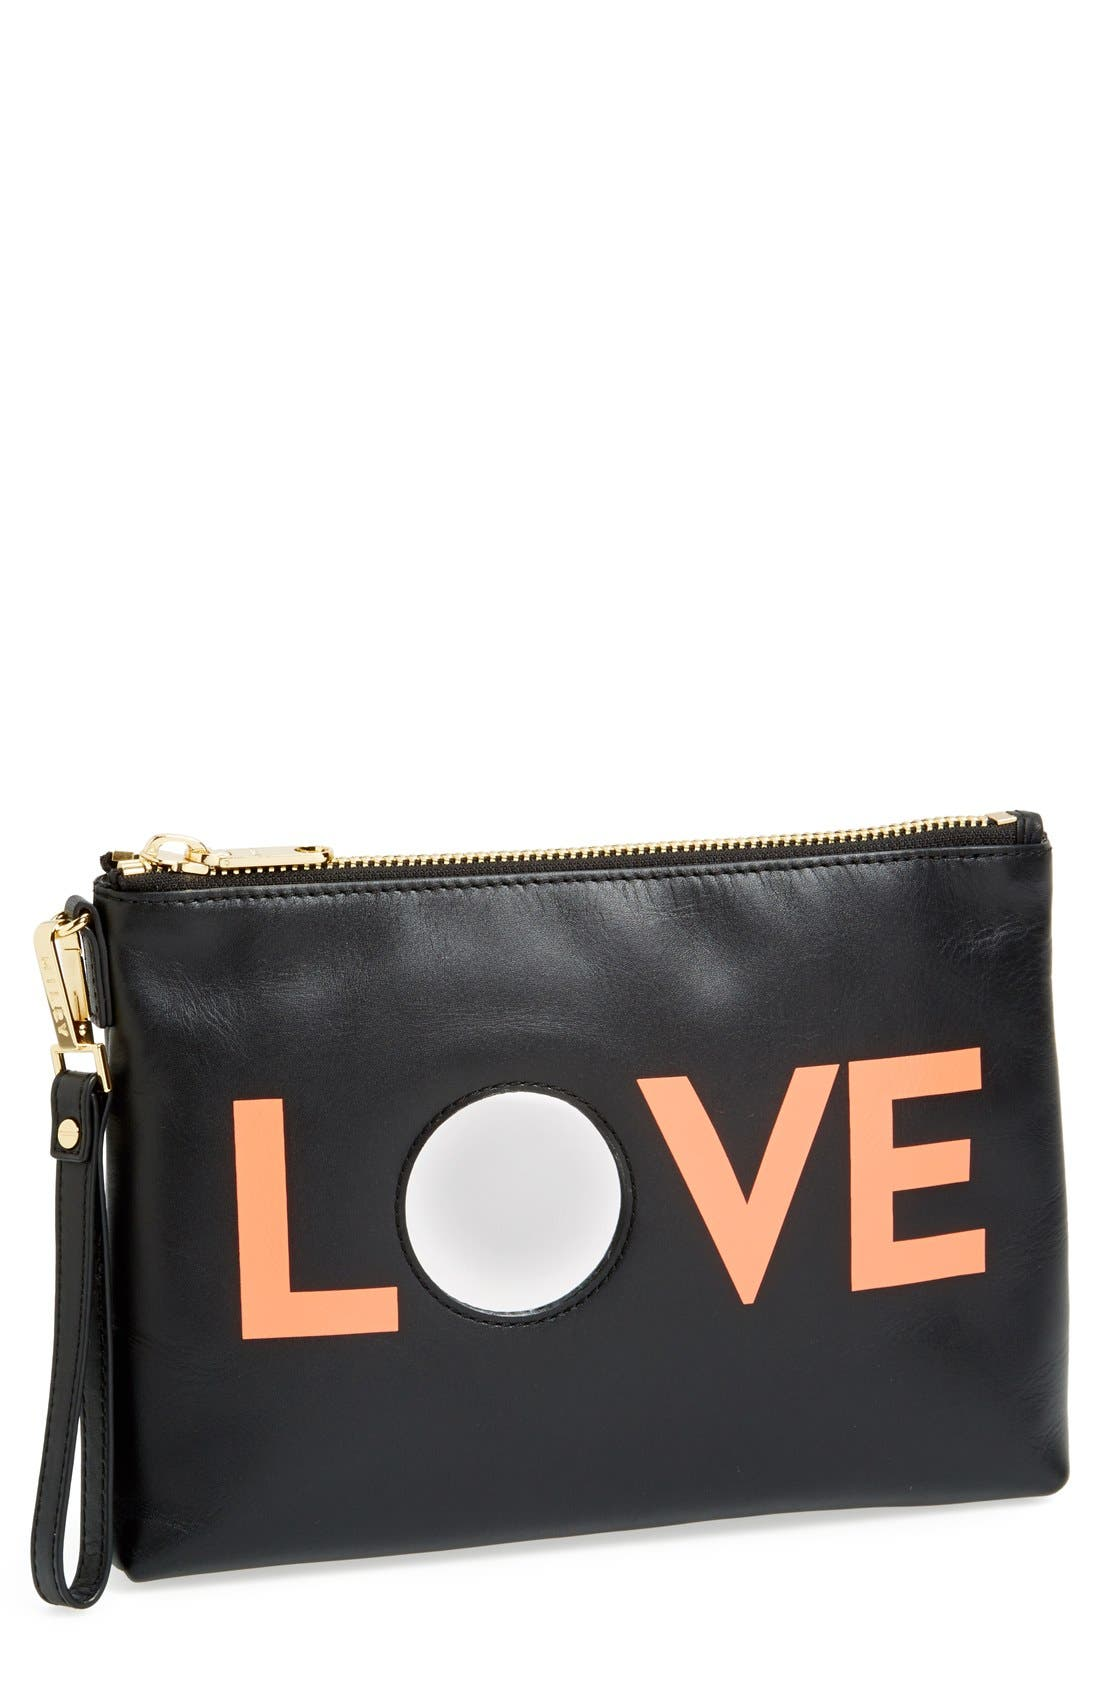 Alternate Image 1 Selected - Milly 'Love' Wristlet Clutch